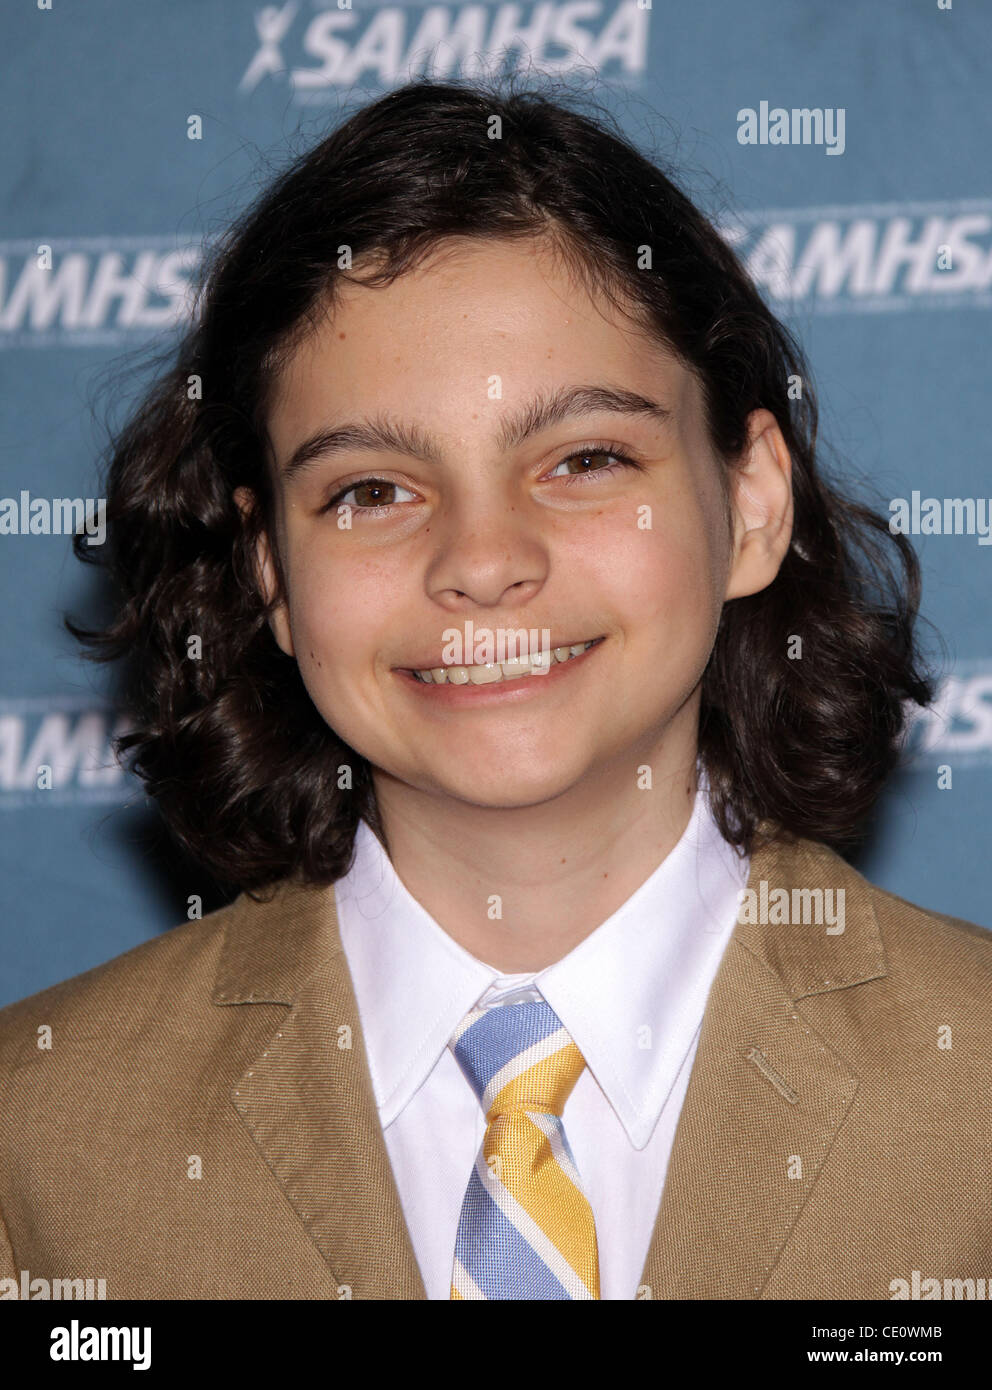 Aug. 24, 2011 - Hollywood, California, U.S. - MAX BURKHOLDER arrives for the The Voice Awards 2011 at the Paramount - Stock Image